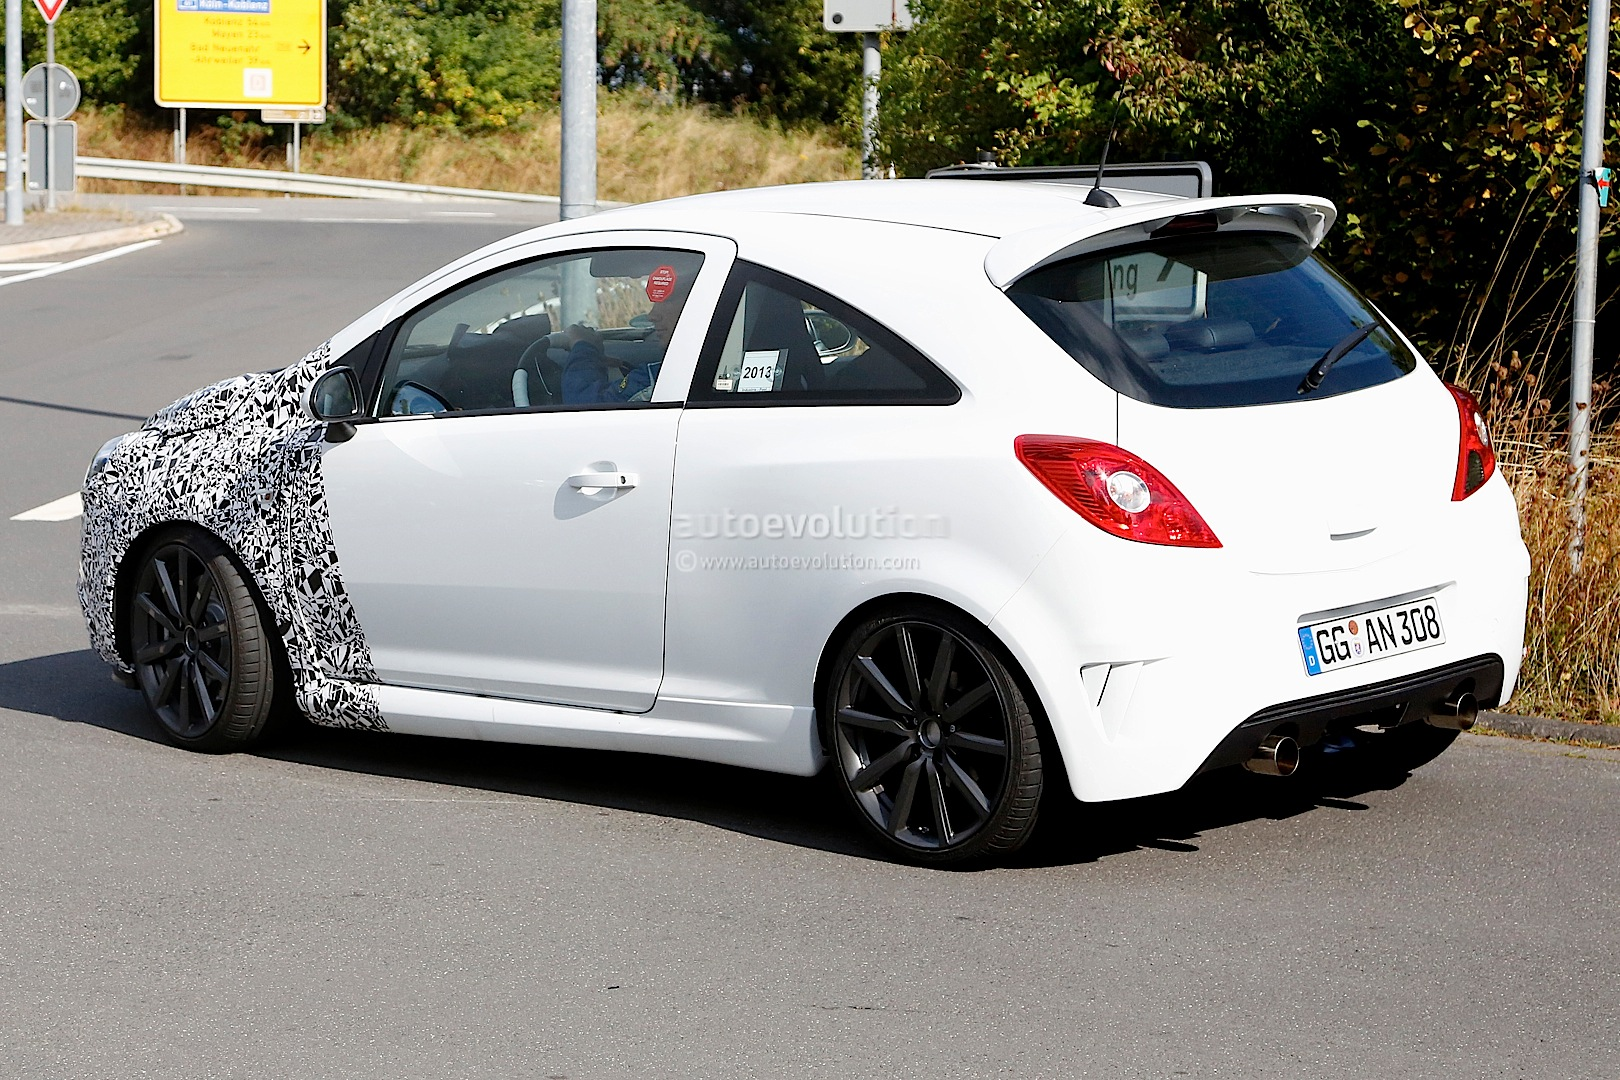 spyshots opel corsa opc facelift should get new sidi turbo engine autoevolution. Black Bedroom Furniture Sets. Home Design Ideas